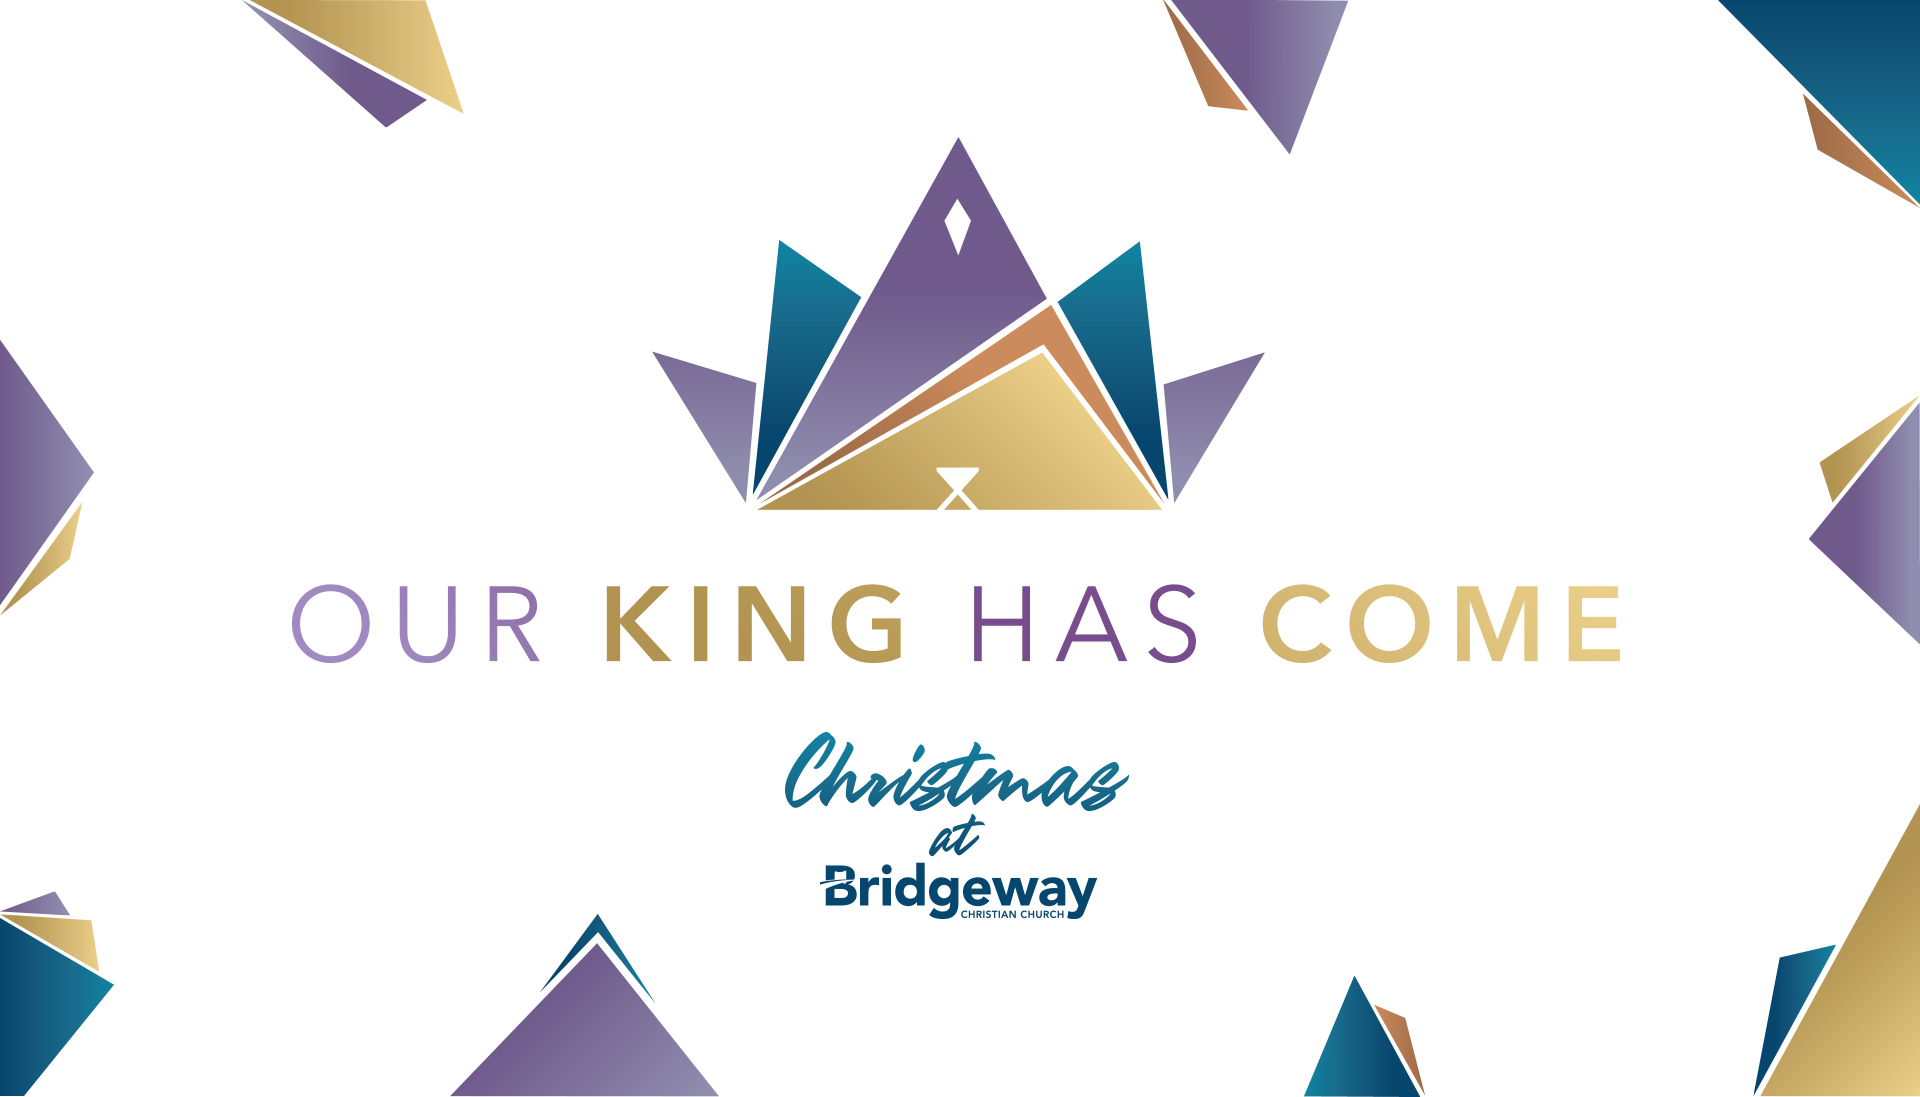 OUR KING HAS COME | Christmas at Bridgeway